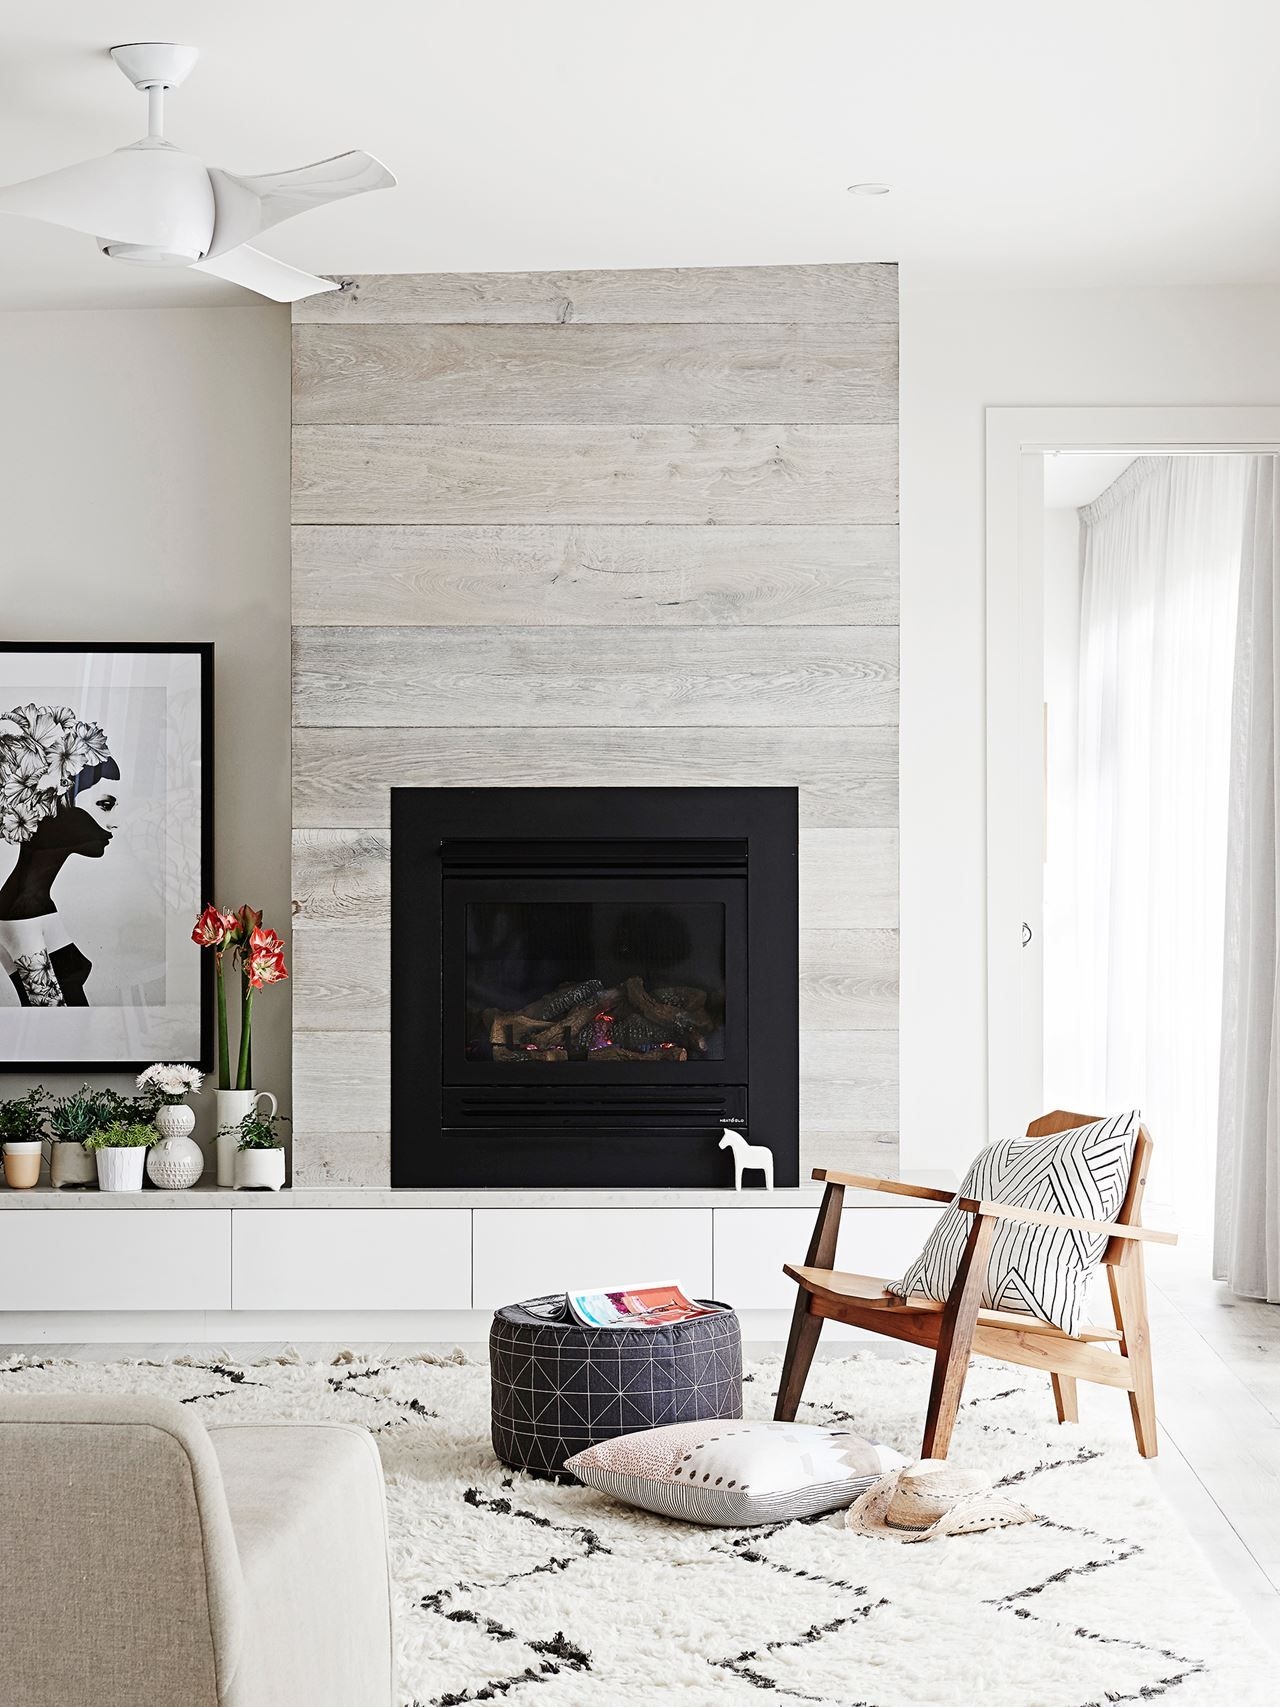 Explore Wall Fireplaces, Fireplace Wall, And More!